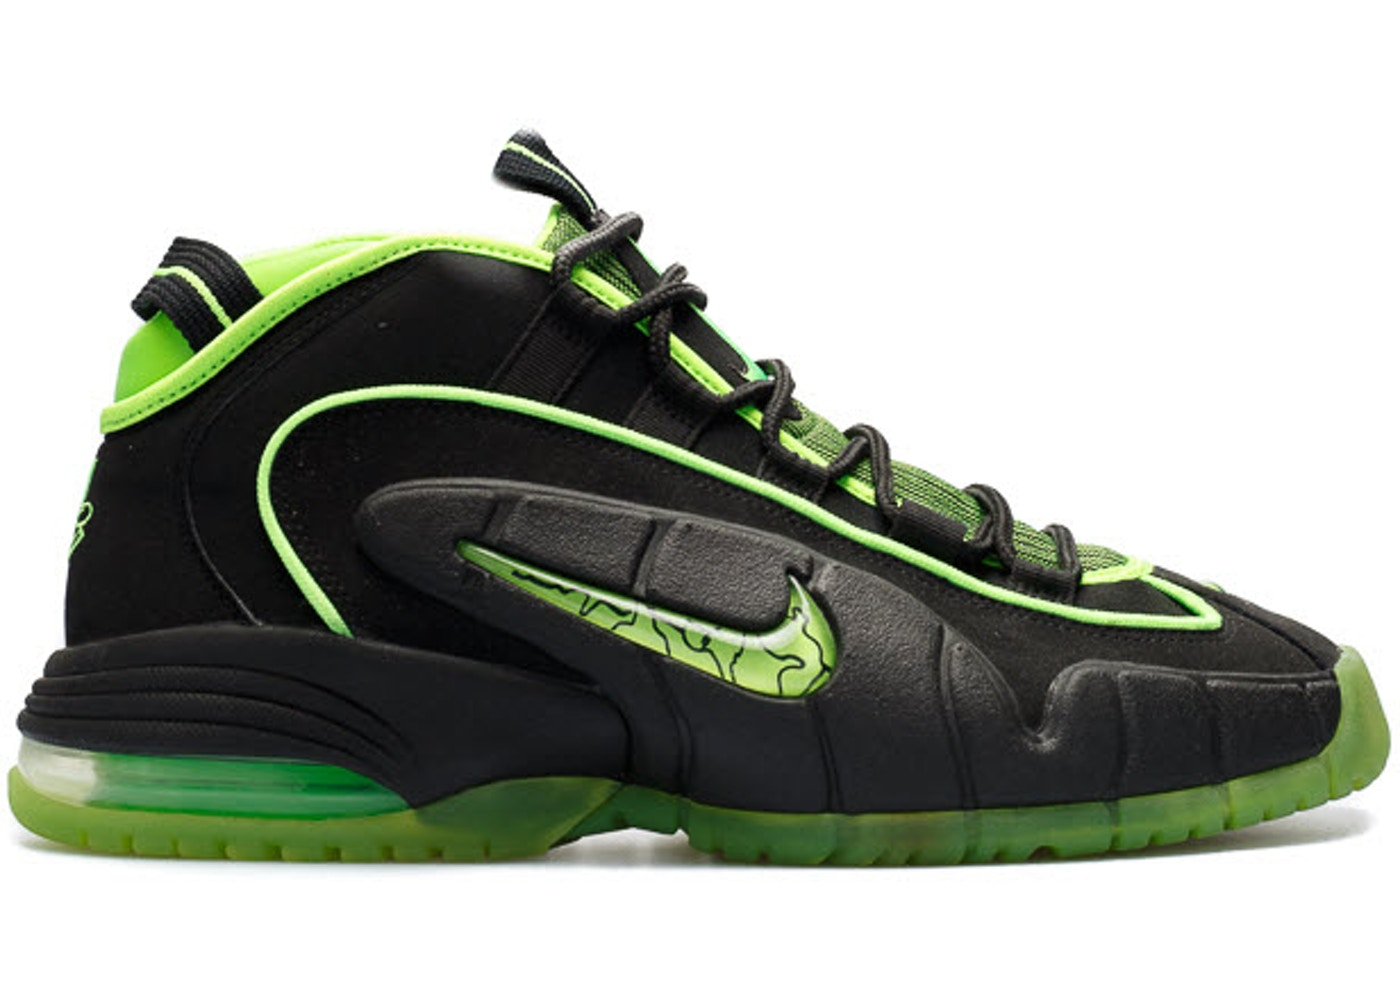 on sale 90653 933bf Air Max Penny 1 Highlighter Pack (2011) - 438793-033